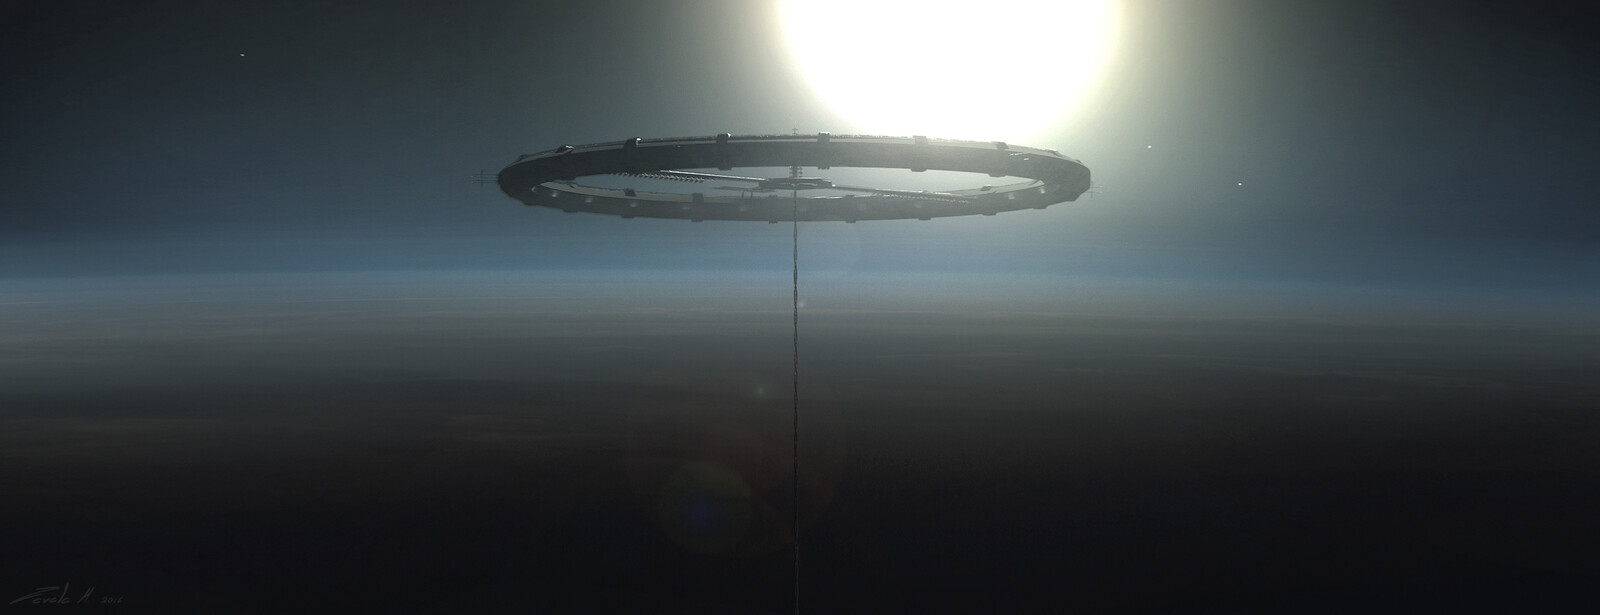 Space elevator ring early concept